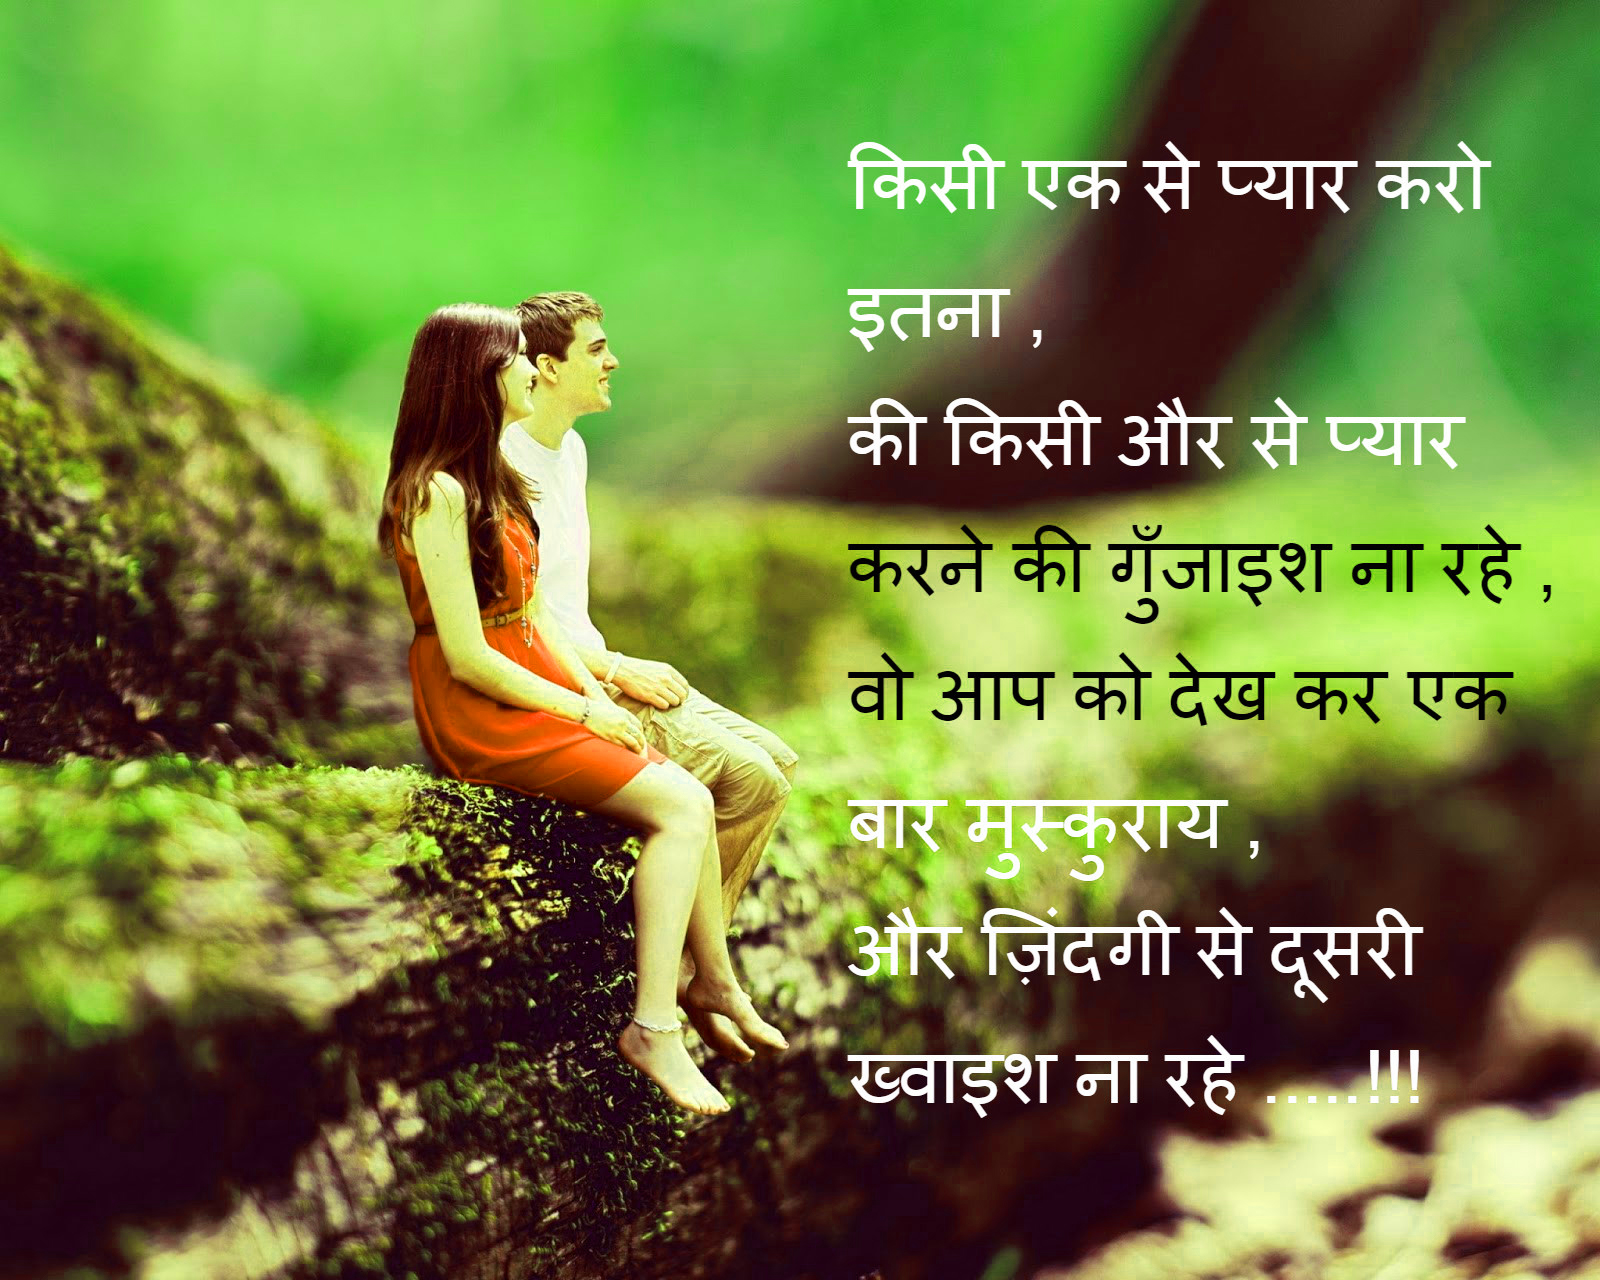 उर्दू शायरी Best Hindi Shayari Wallpaper Pictures Images HD